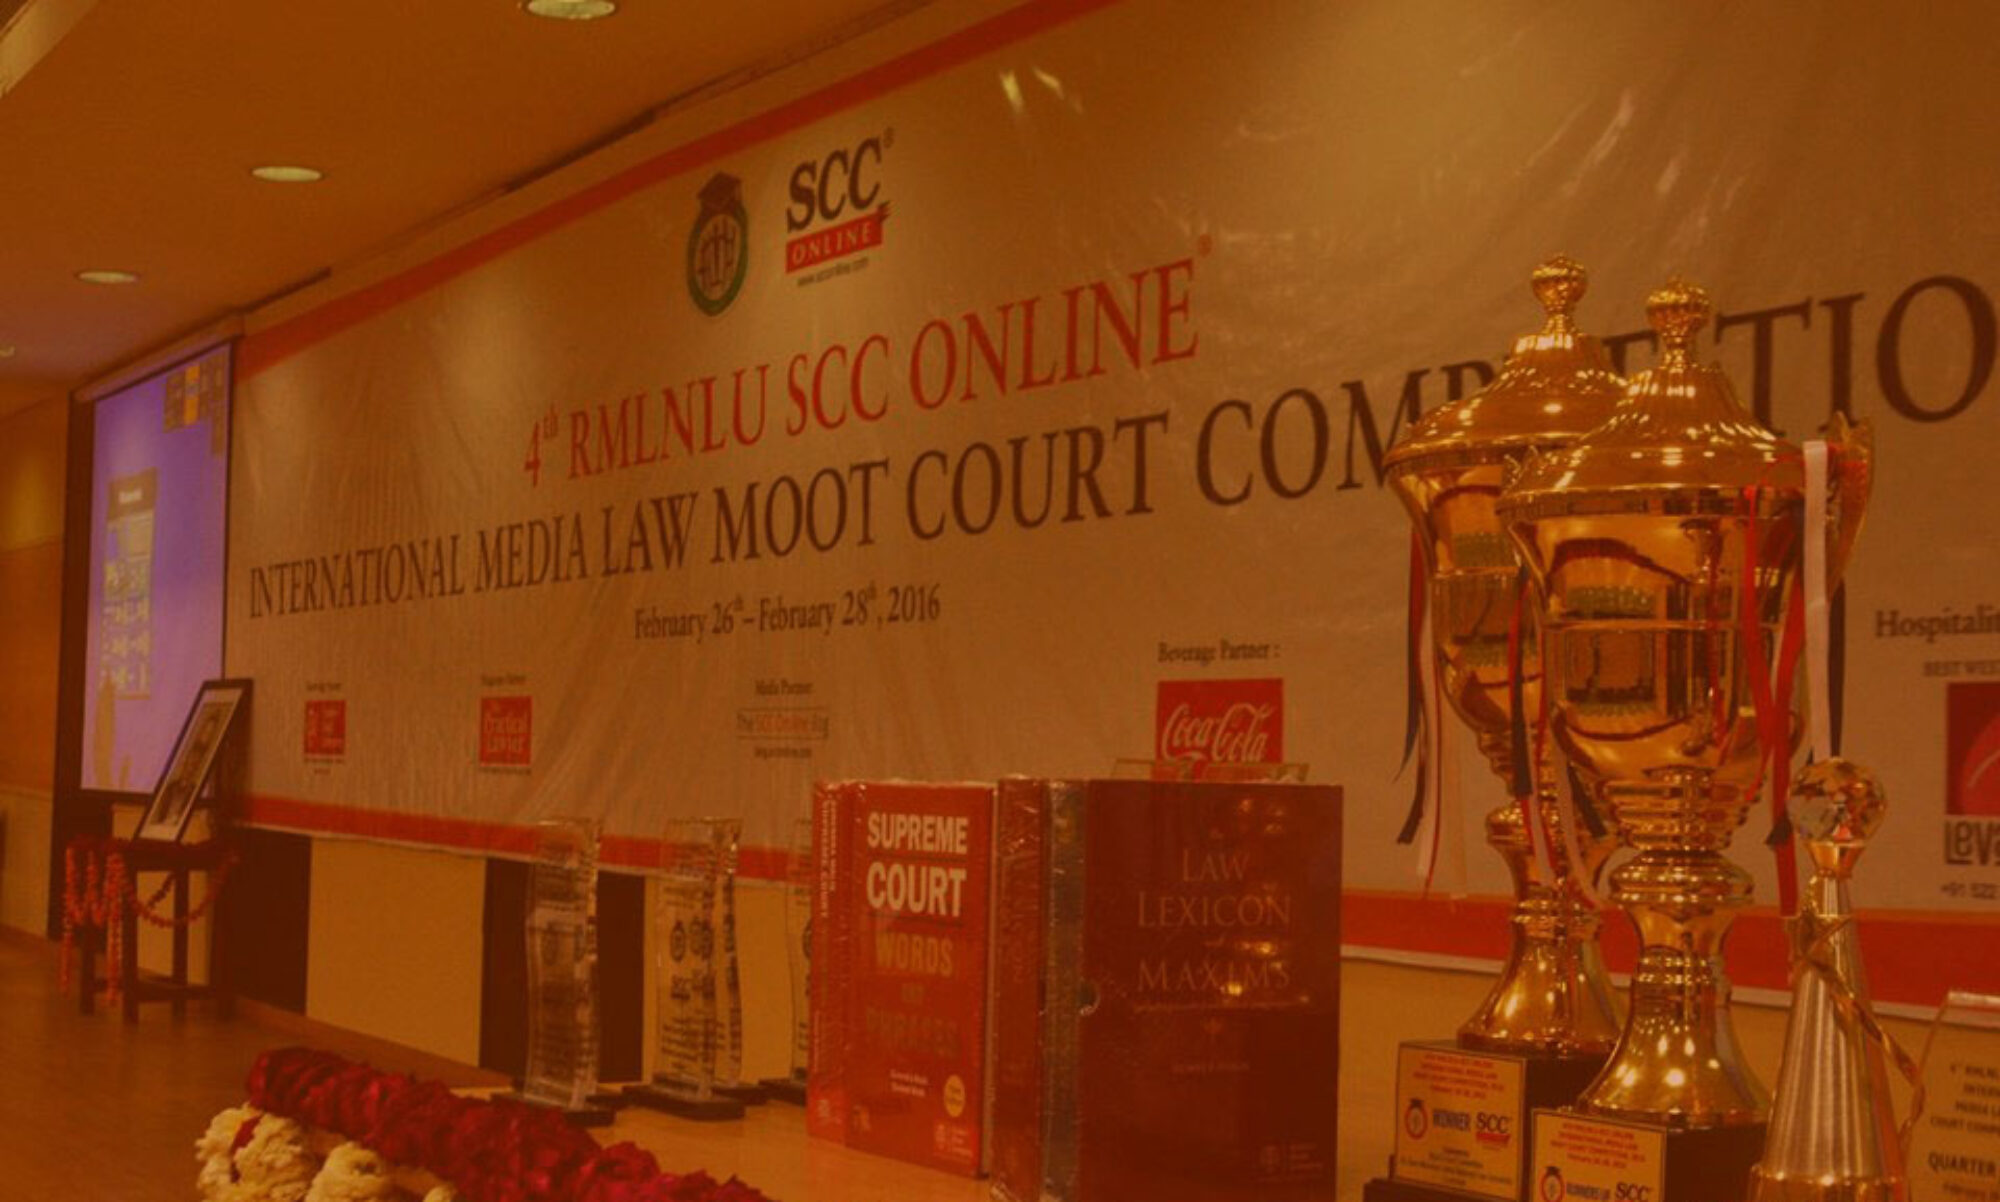 RMLNLU-SCC Online® International Media Law Moot Court Competition, 2020